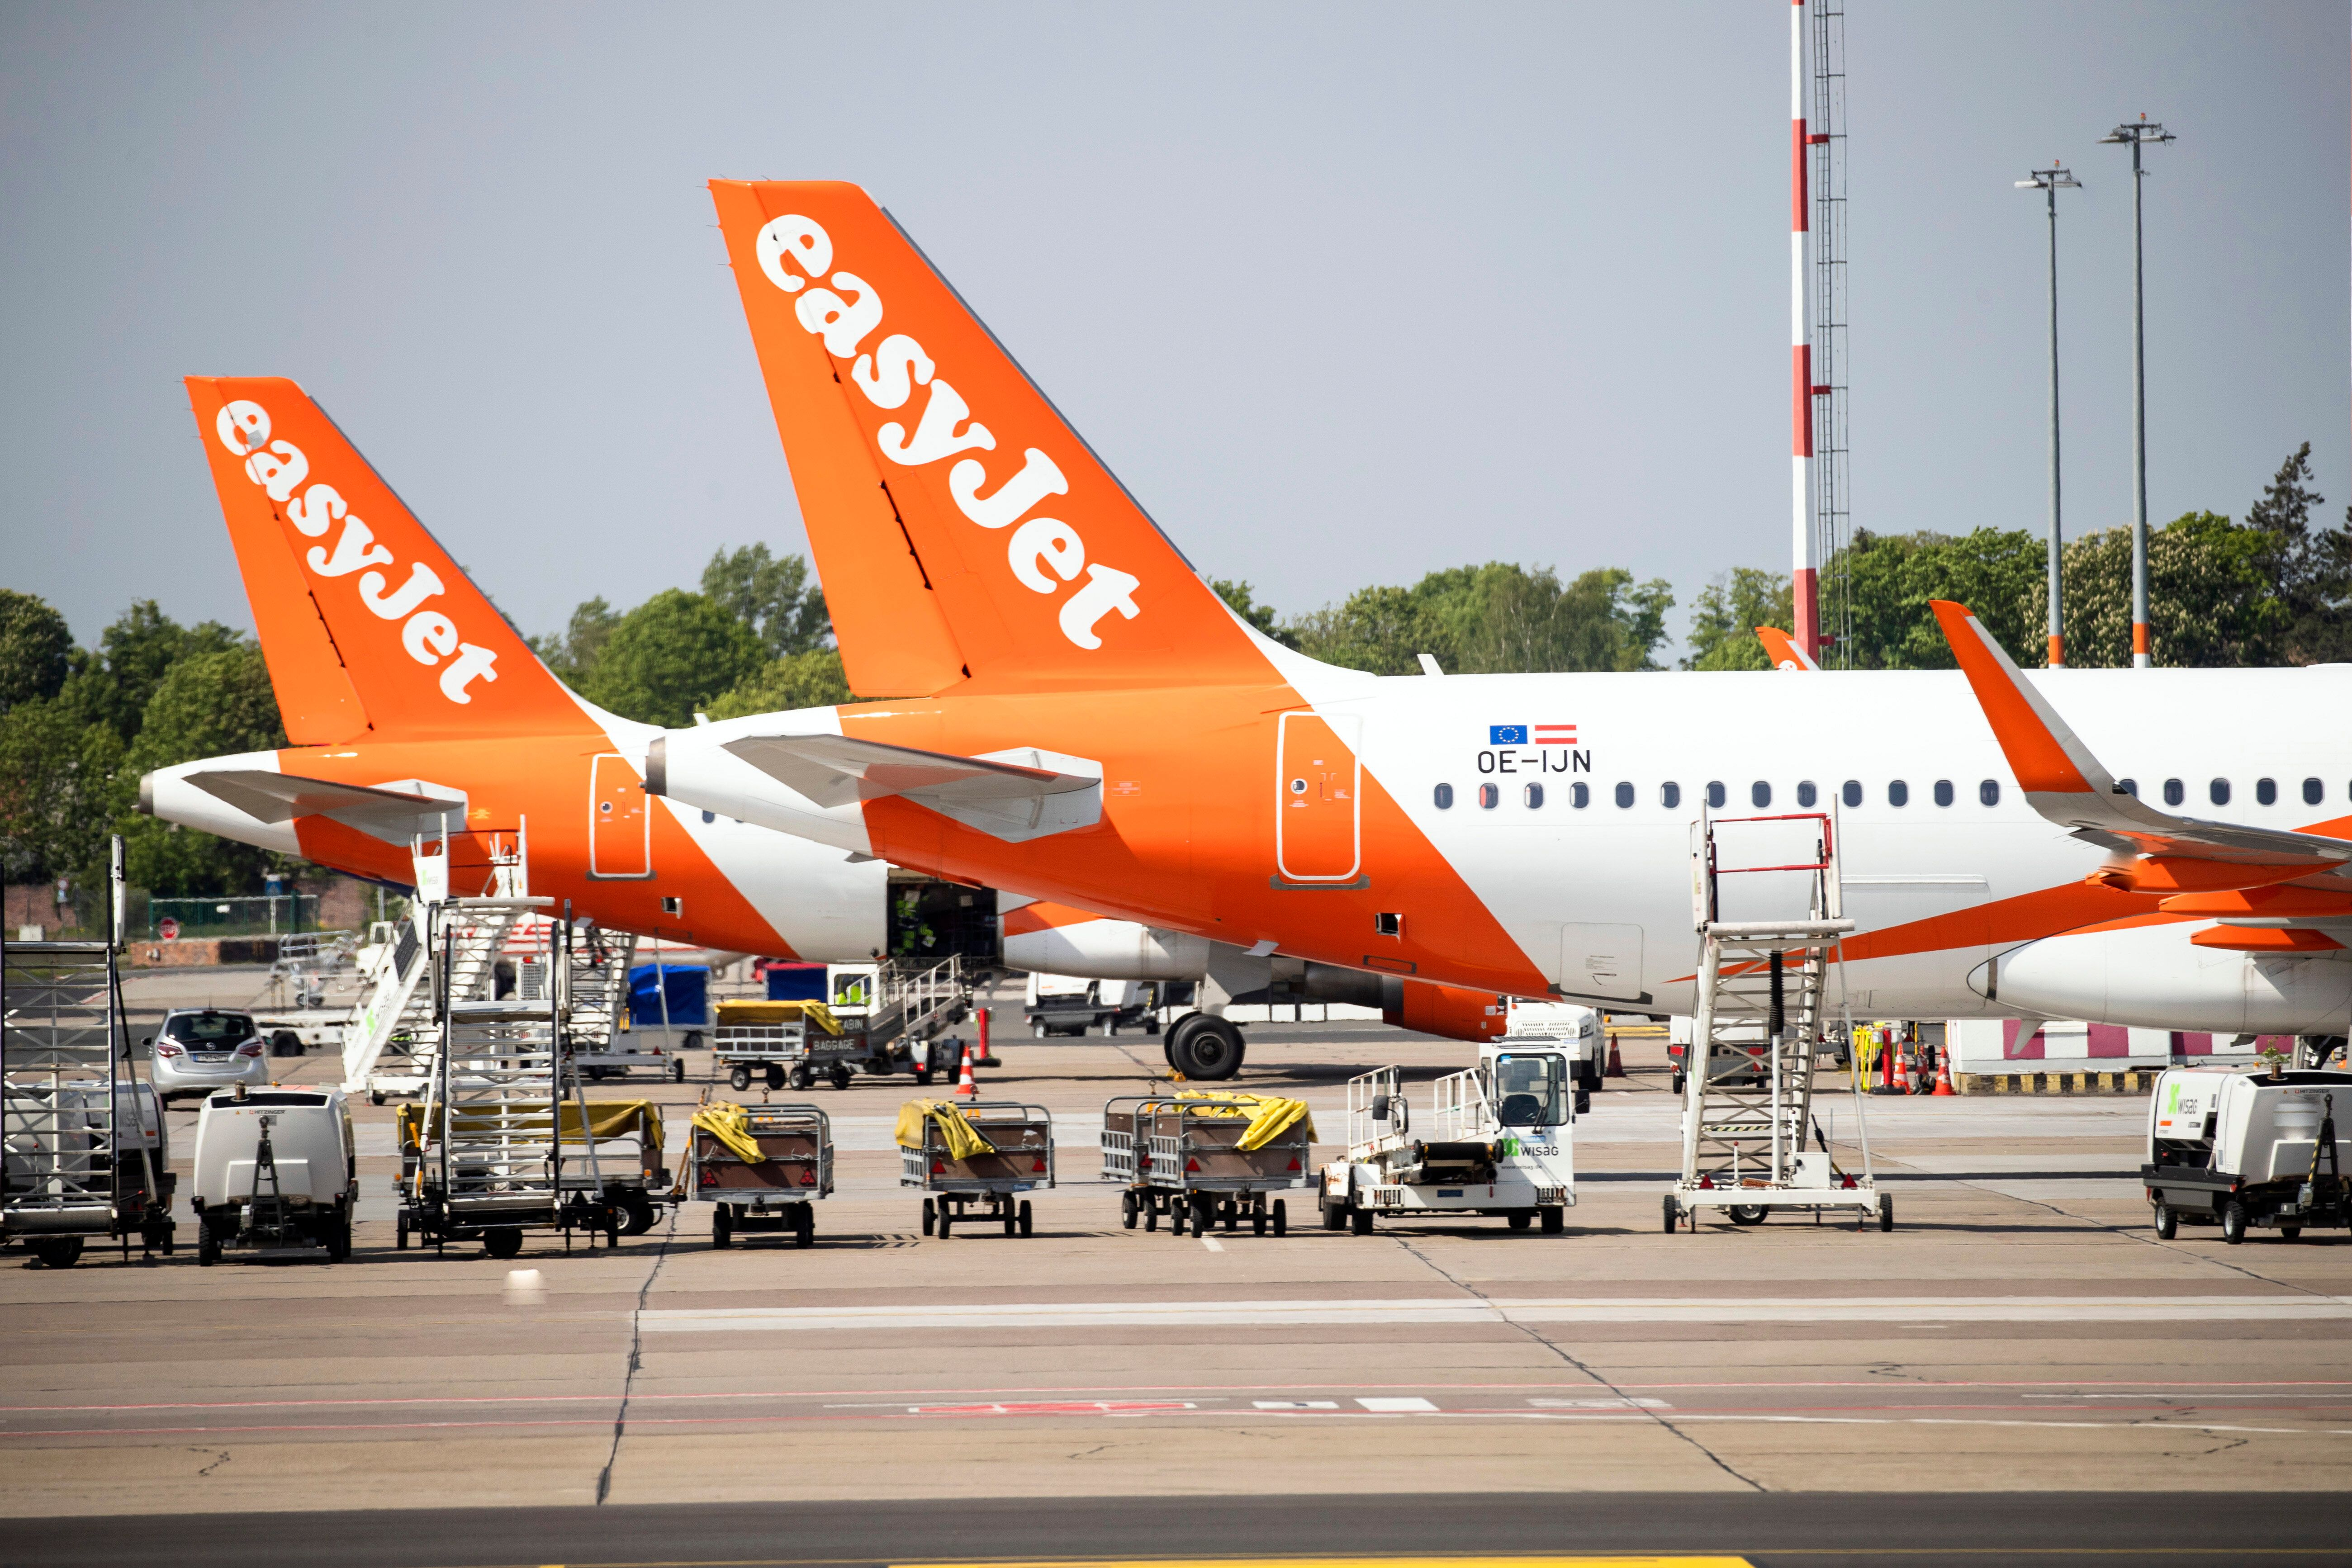 Easyjet airplanes are seen at Berlin's airport in Schoenefeld, Germany on on May 8, 2019.  (Photo by Emmanuele Contini/NurPhoto via Getty Images)